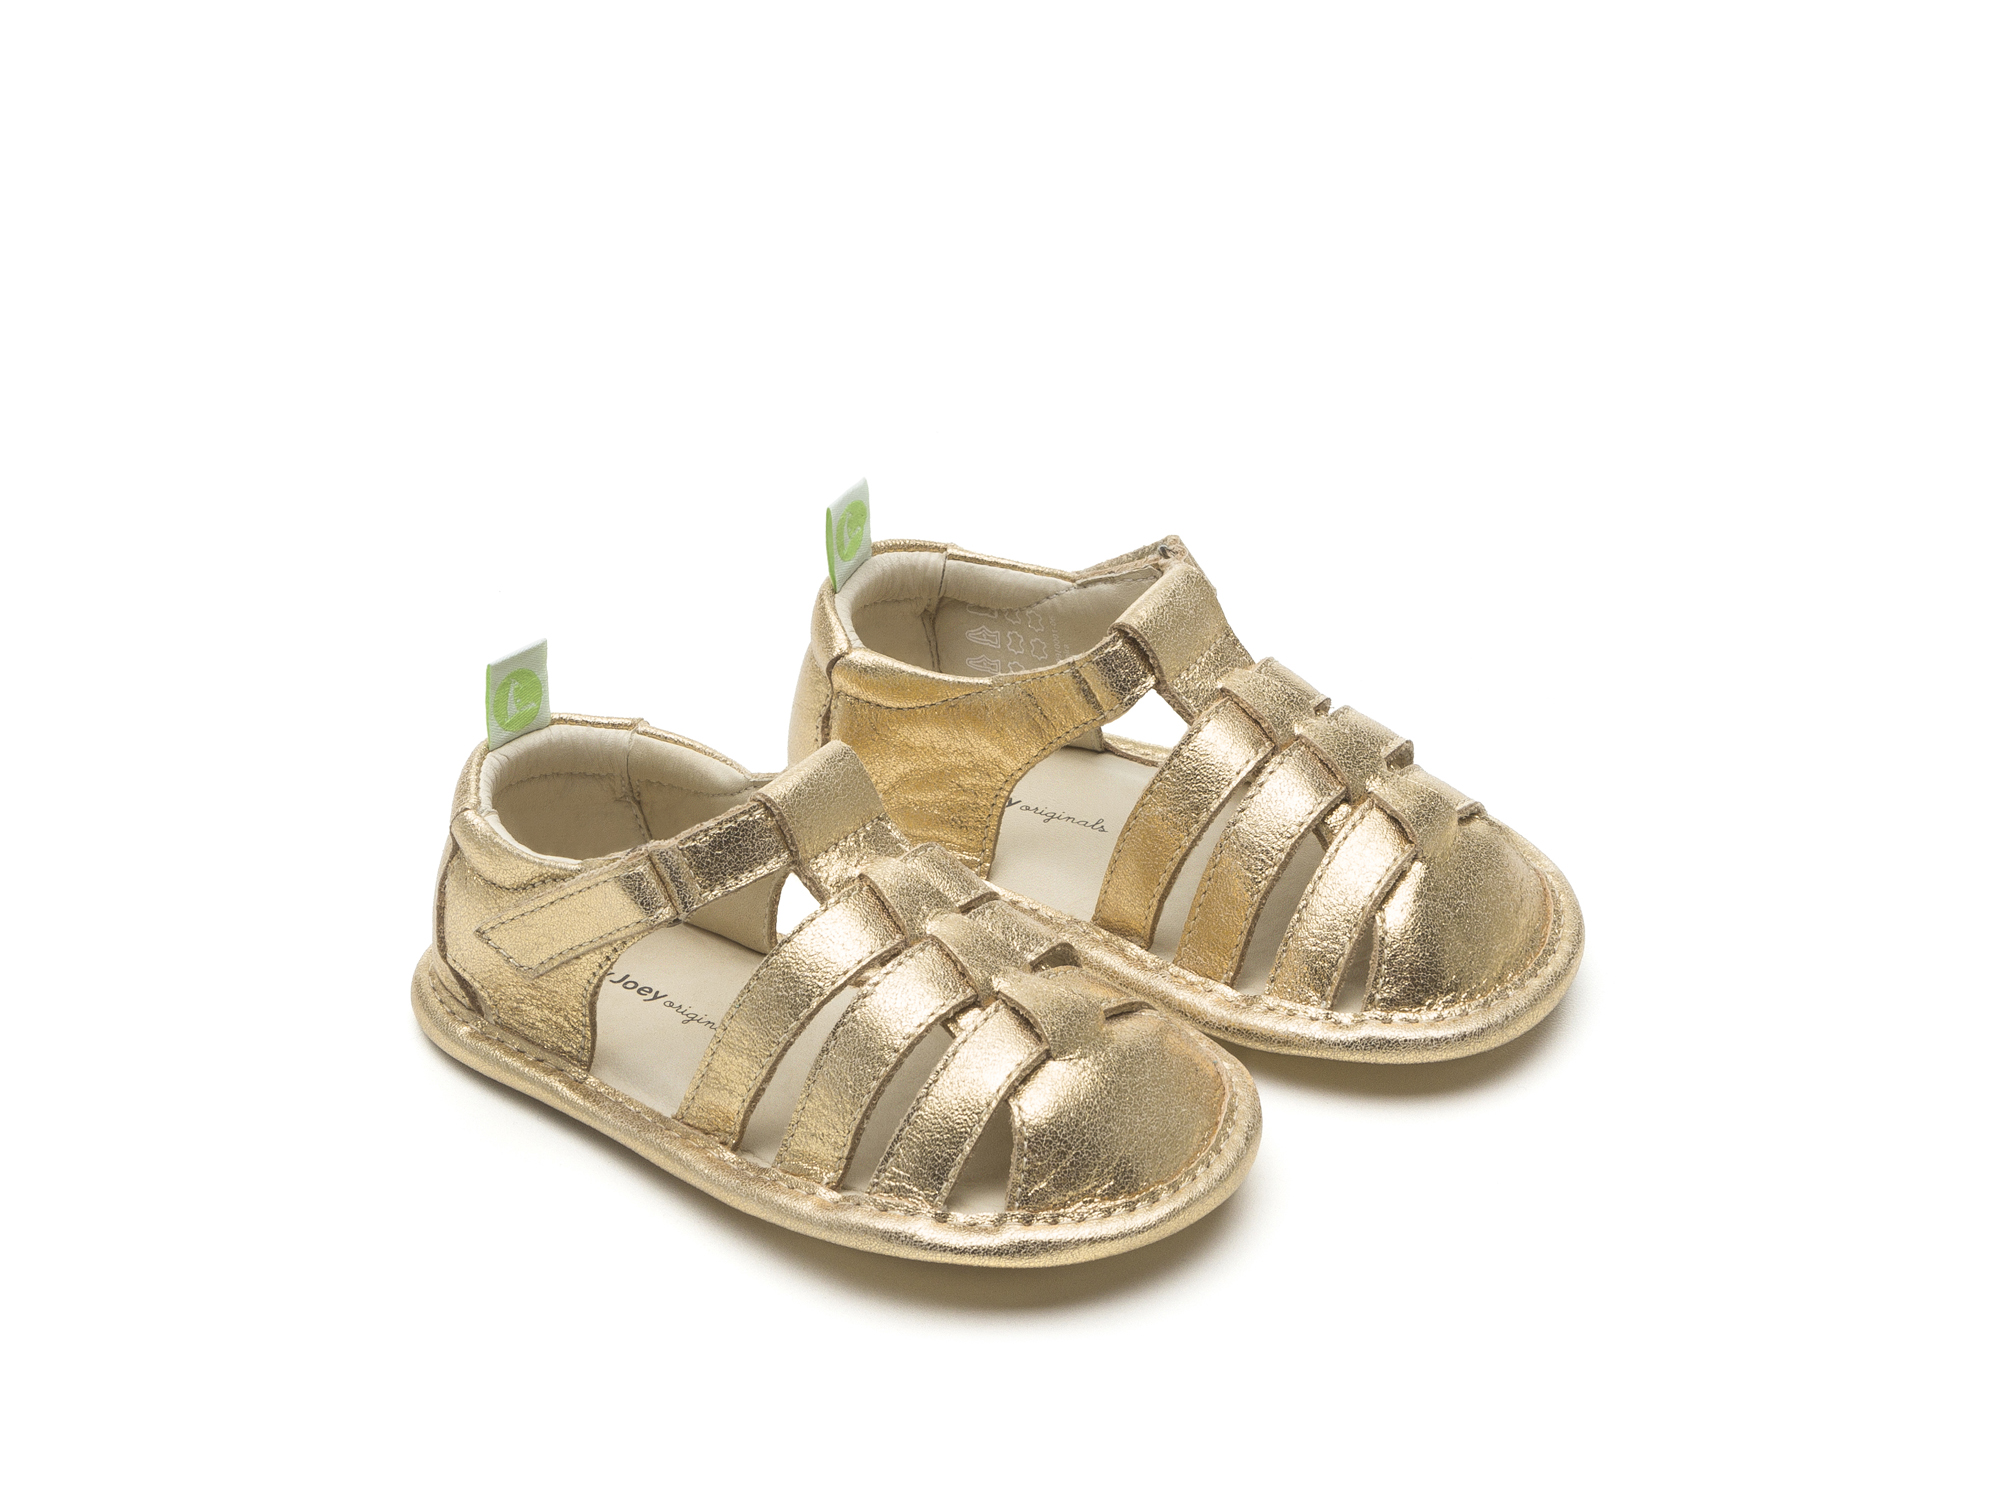 Sandal Minty Golden Shine Baby for ages 0 to 2 years - 0